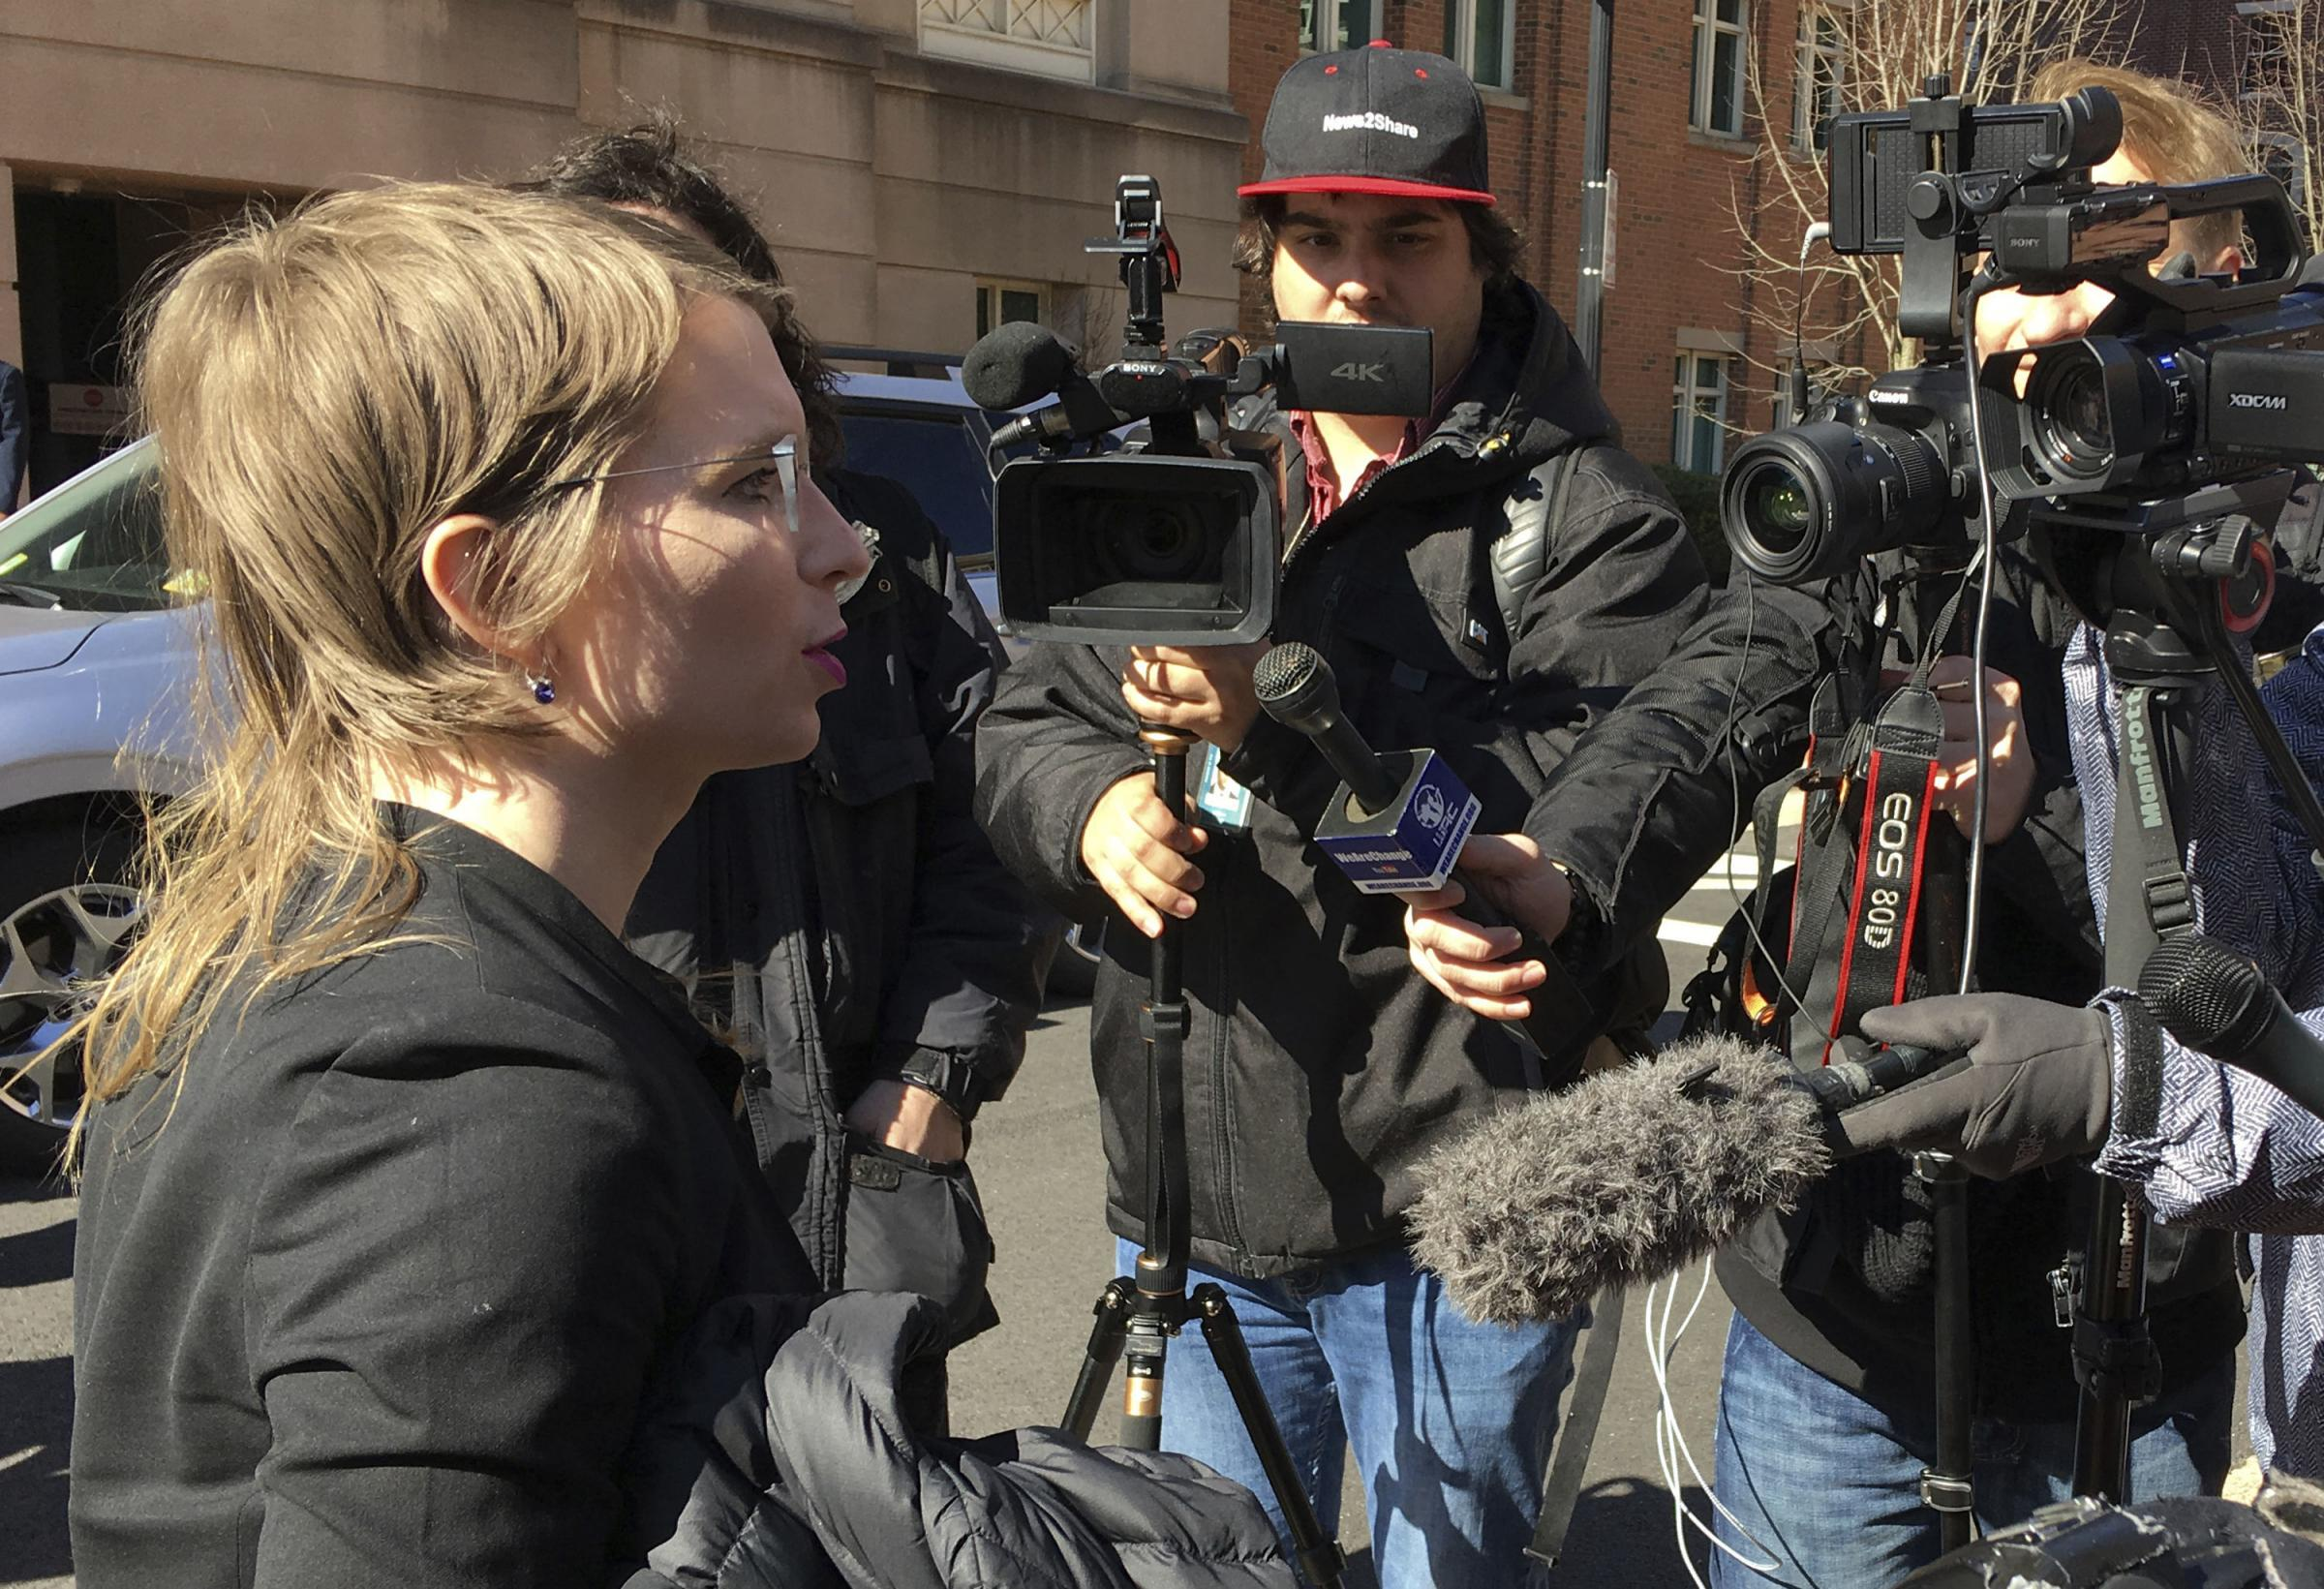 Chelsea Manning addresses the media outside federal court in Alexandria. AP Photo/Matthew Barakat